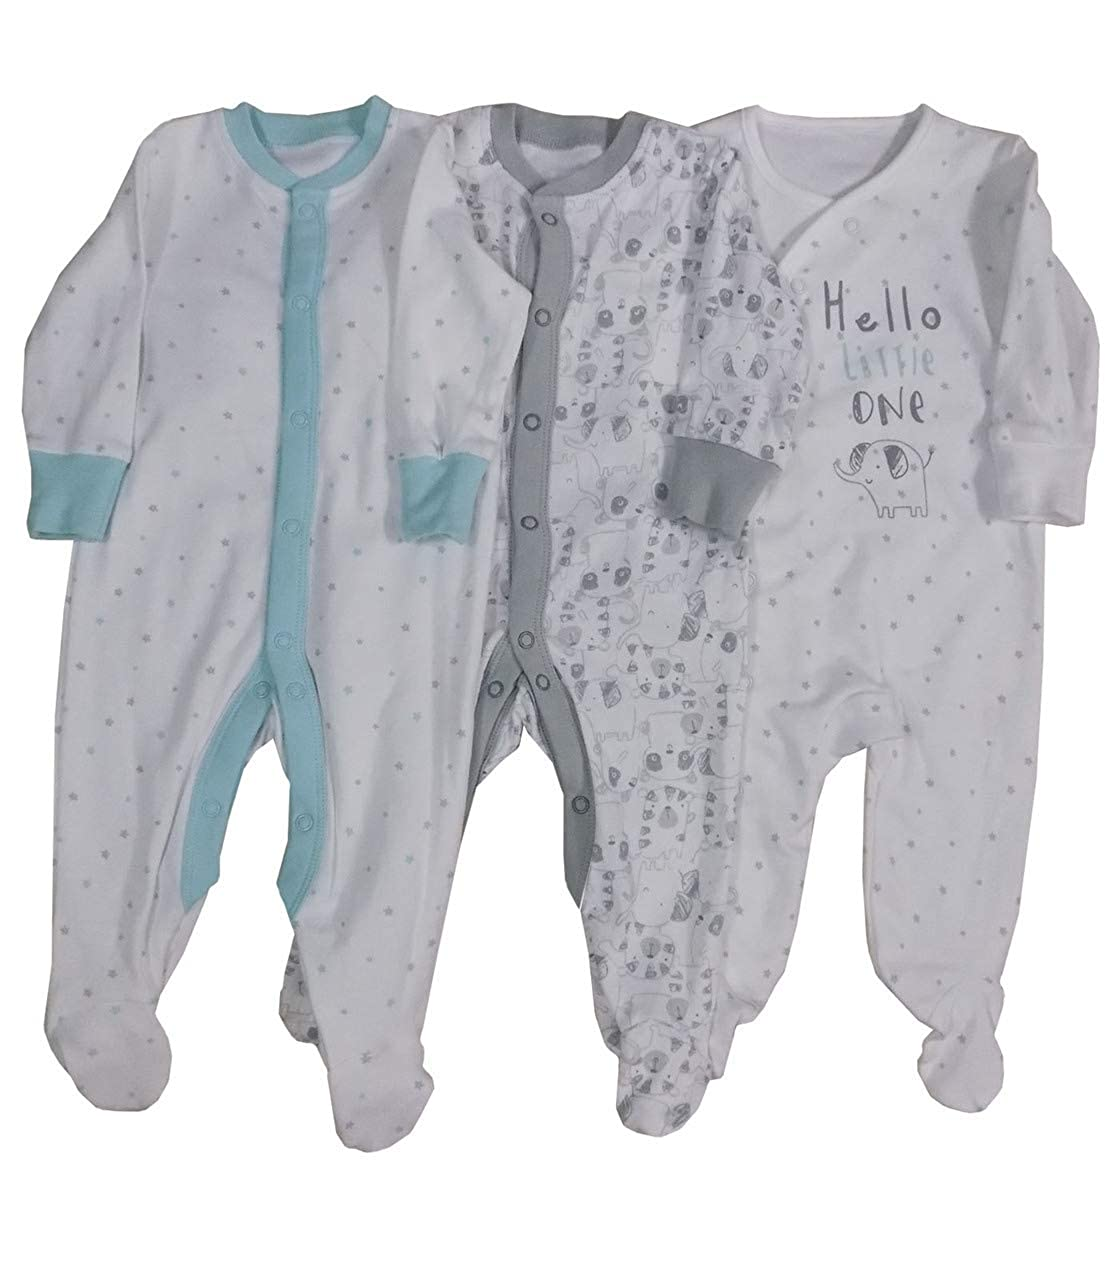 with 3 Bamboo Charcoal Inserts Fastener: Hook-Loop Littles /& Bloomz Set of 3 Reusable Pocket Cloth Nappy Patterns 320